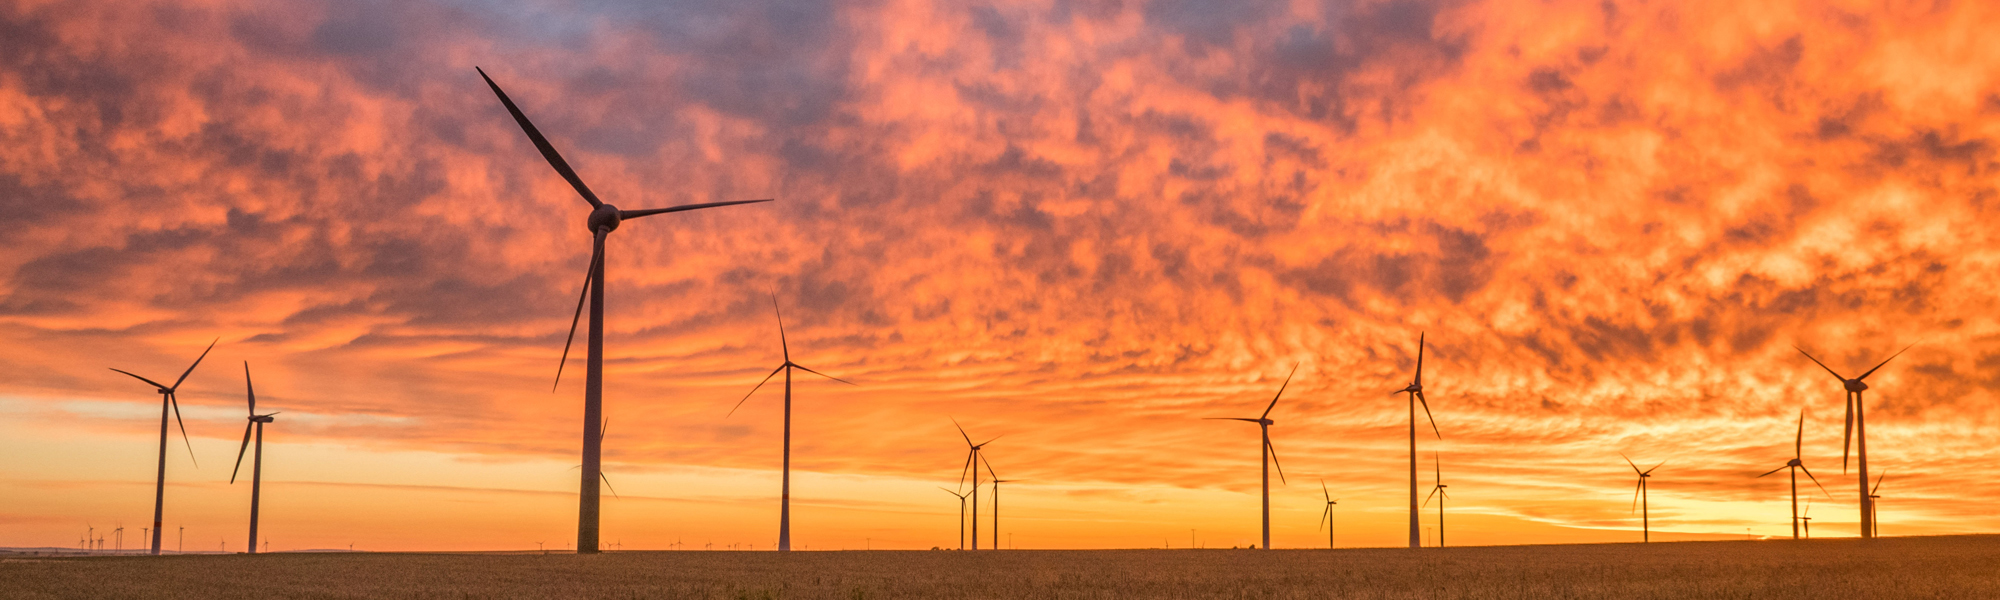 Sunset behind wind turbines. Photo by Karsten Würth (@karsten.wuerth) on Unsplash